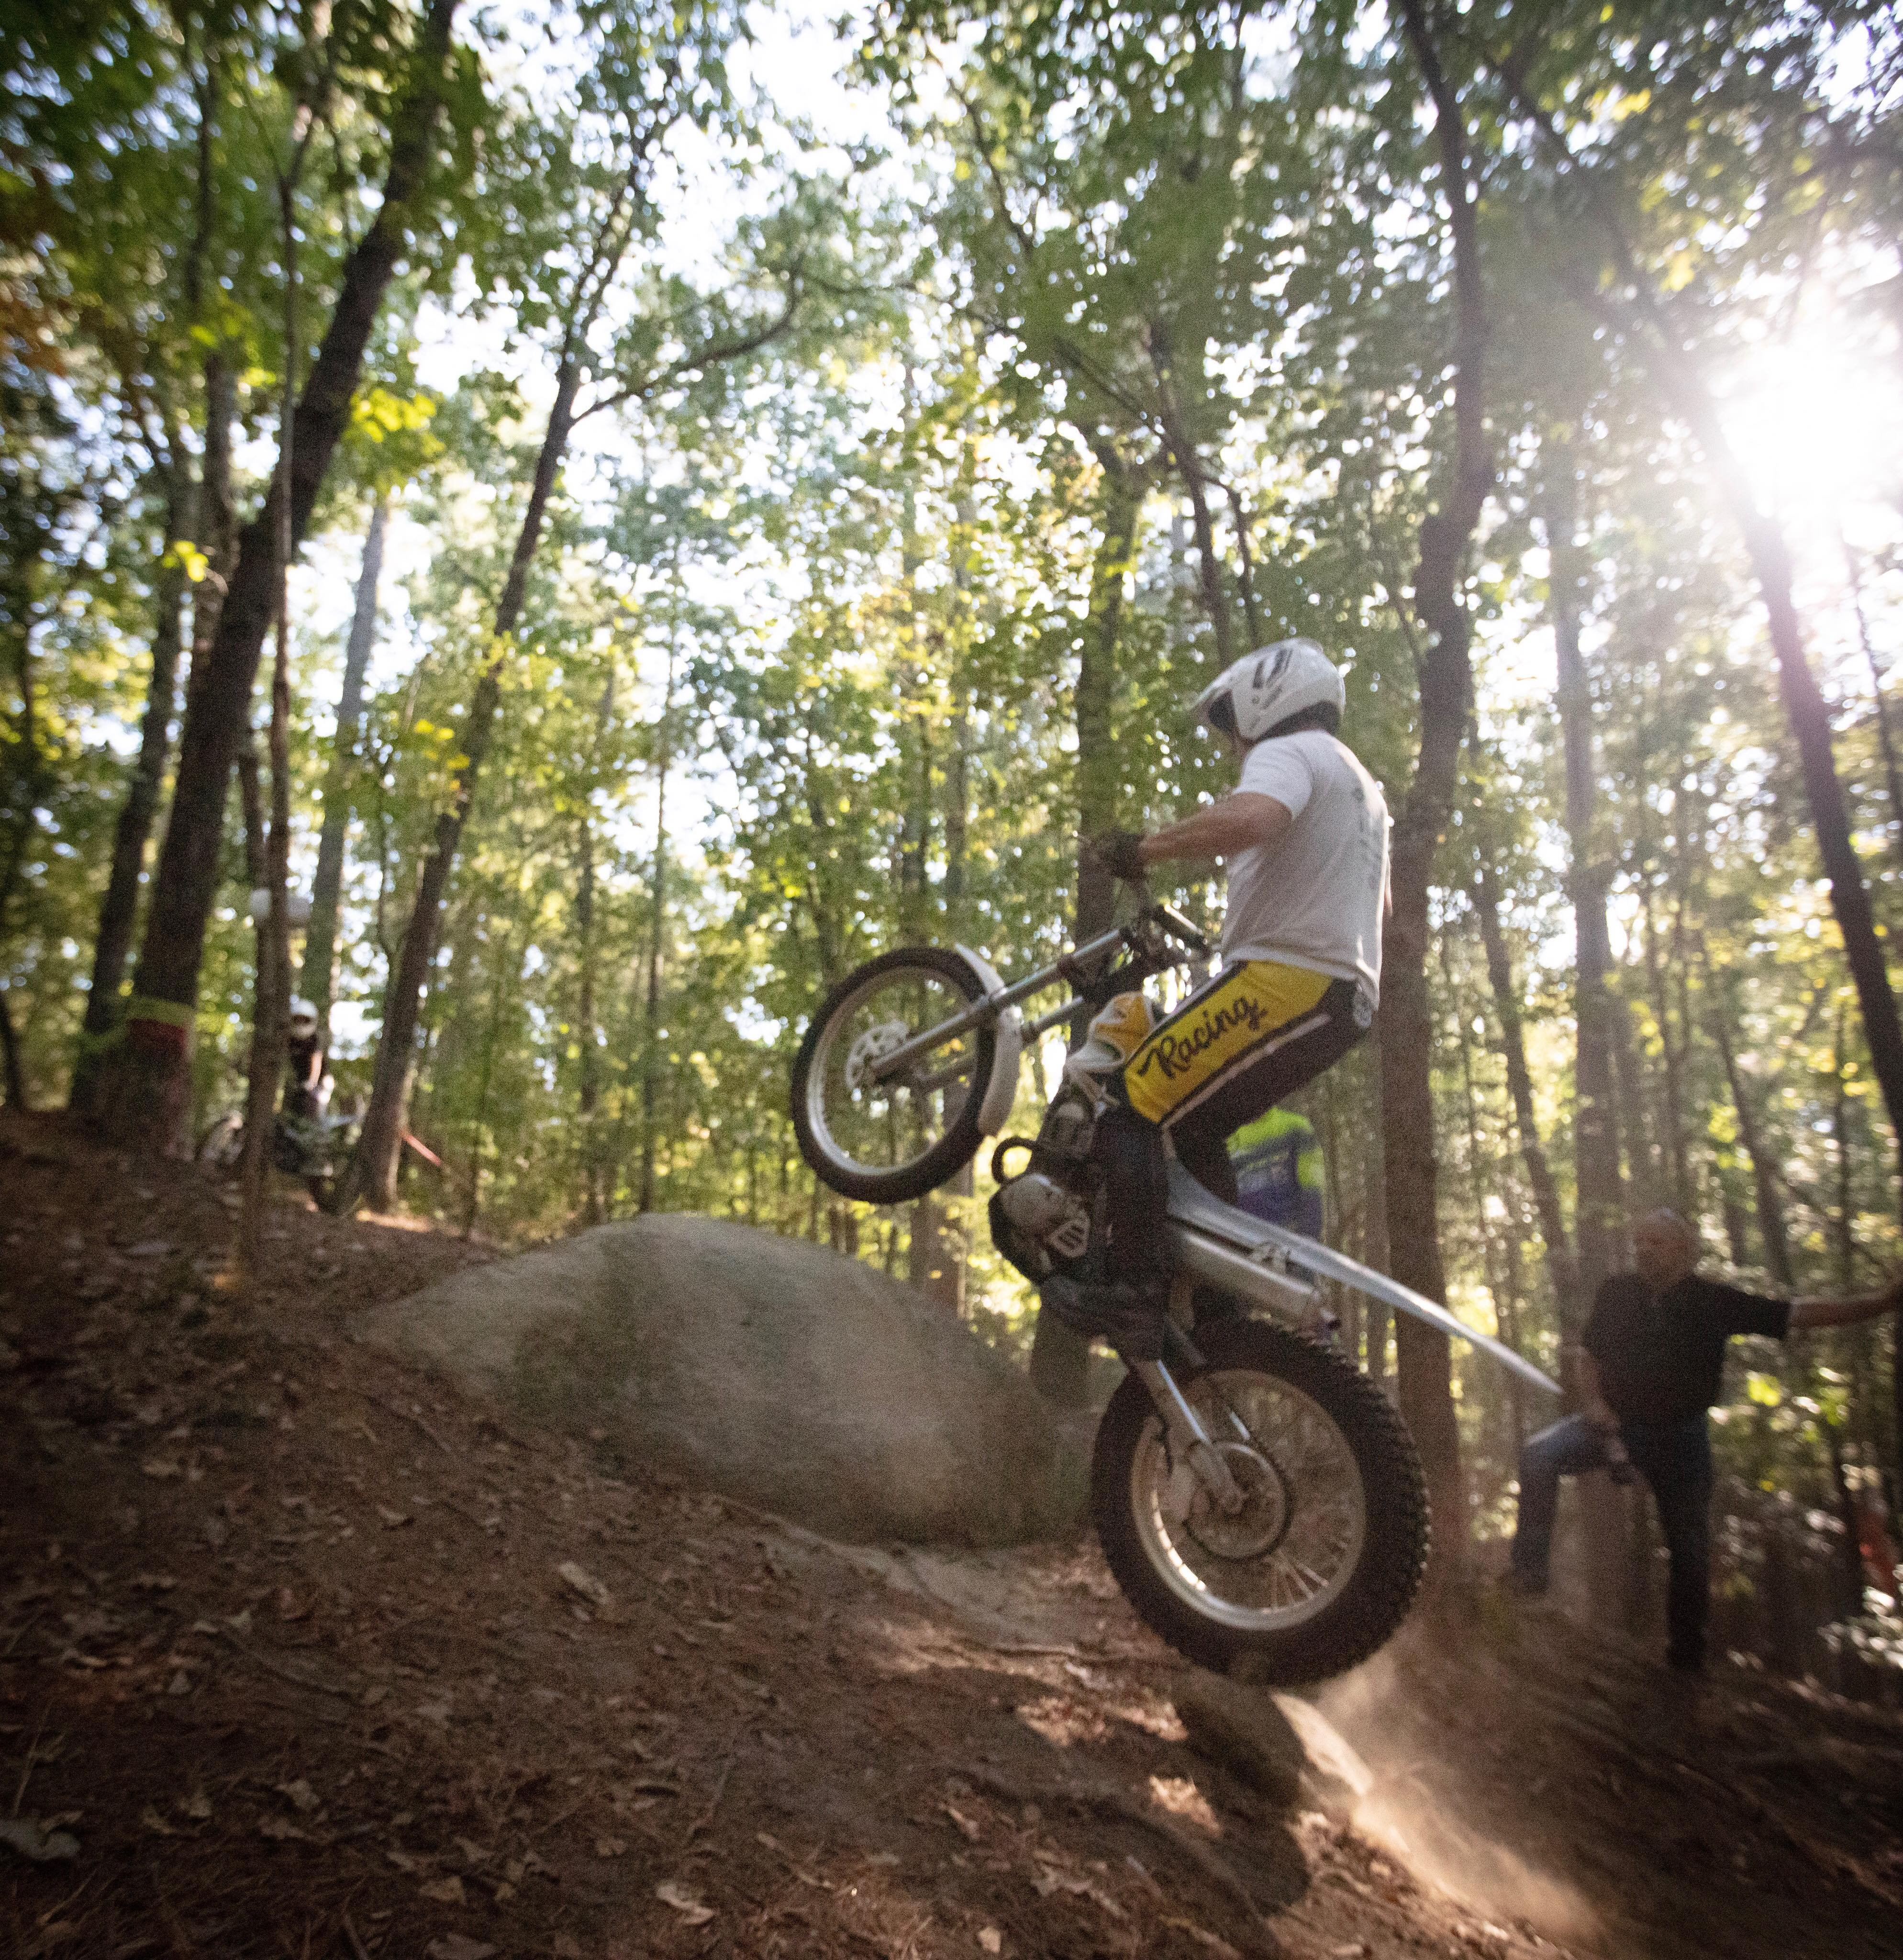 New Trials Rider, Old SY175 Questions